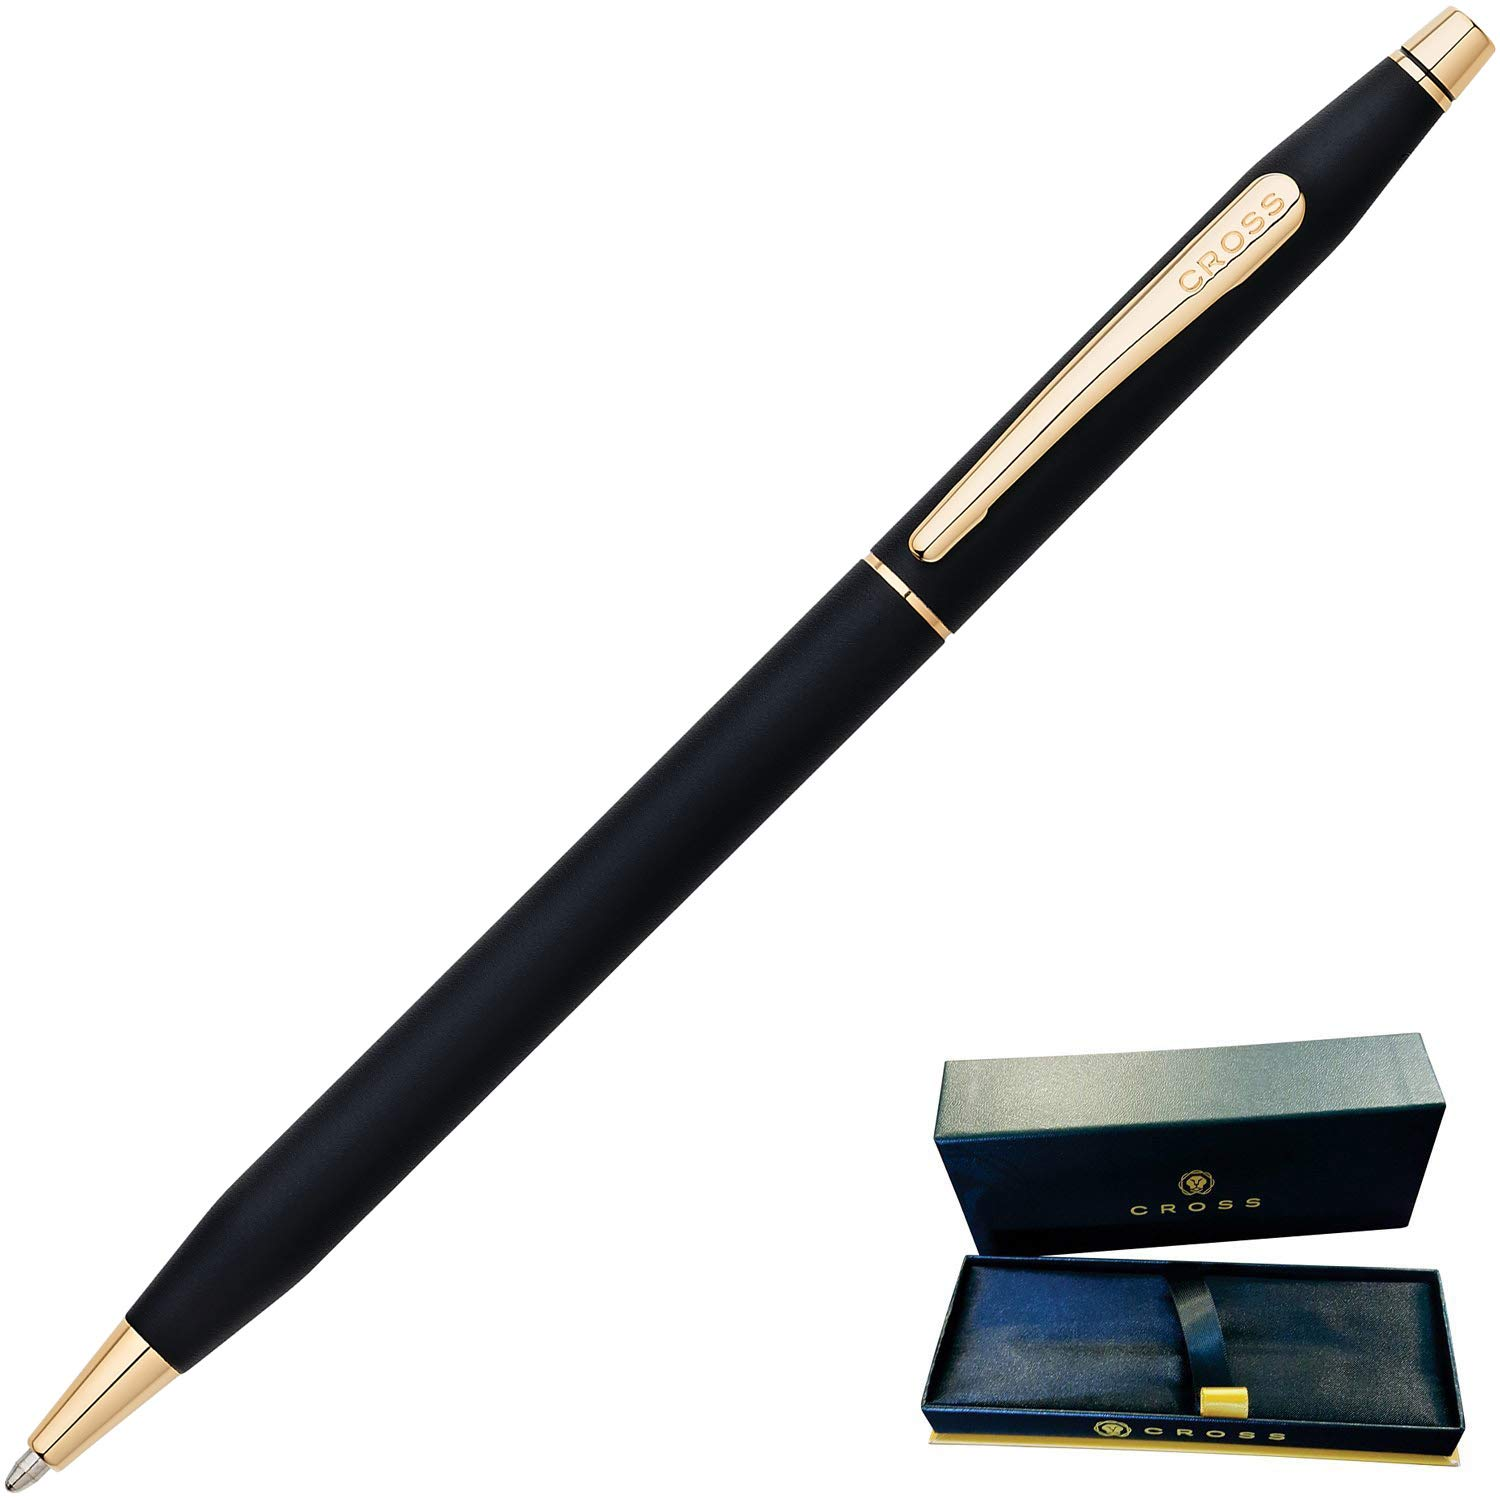 Dayspring Pens | Engraved/Personalized Cross Classic Century Black Ballpoint Pen with Gold Trim 2502. Custom Engraved Fast! by Dayspring Pens (Image #4)